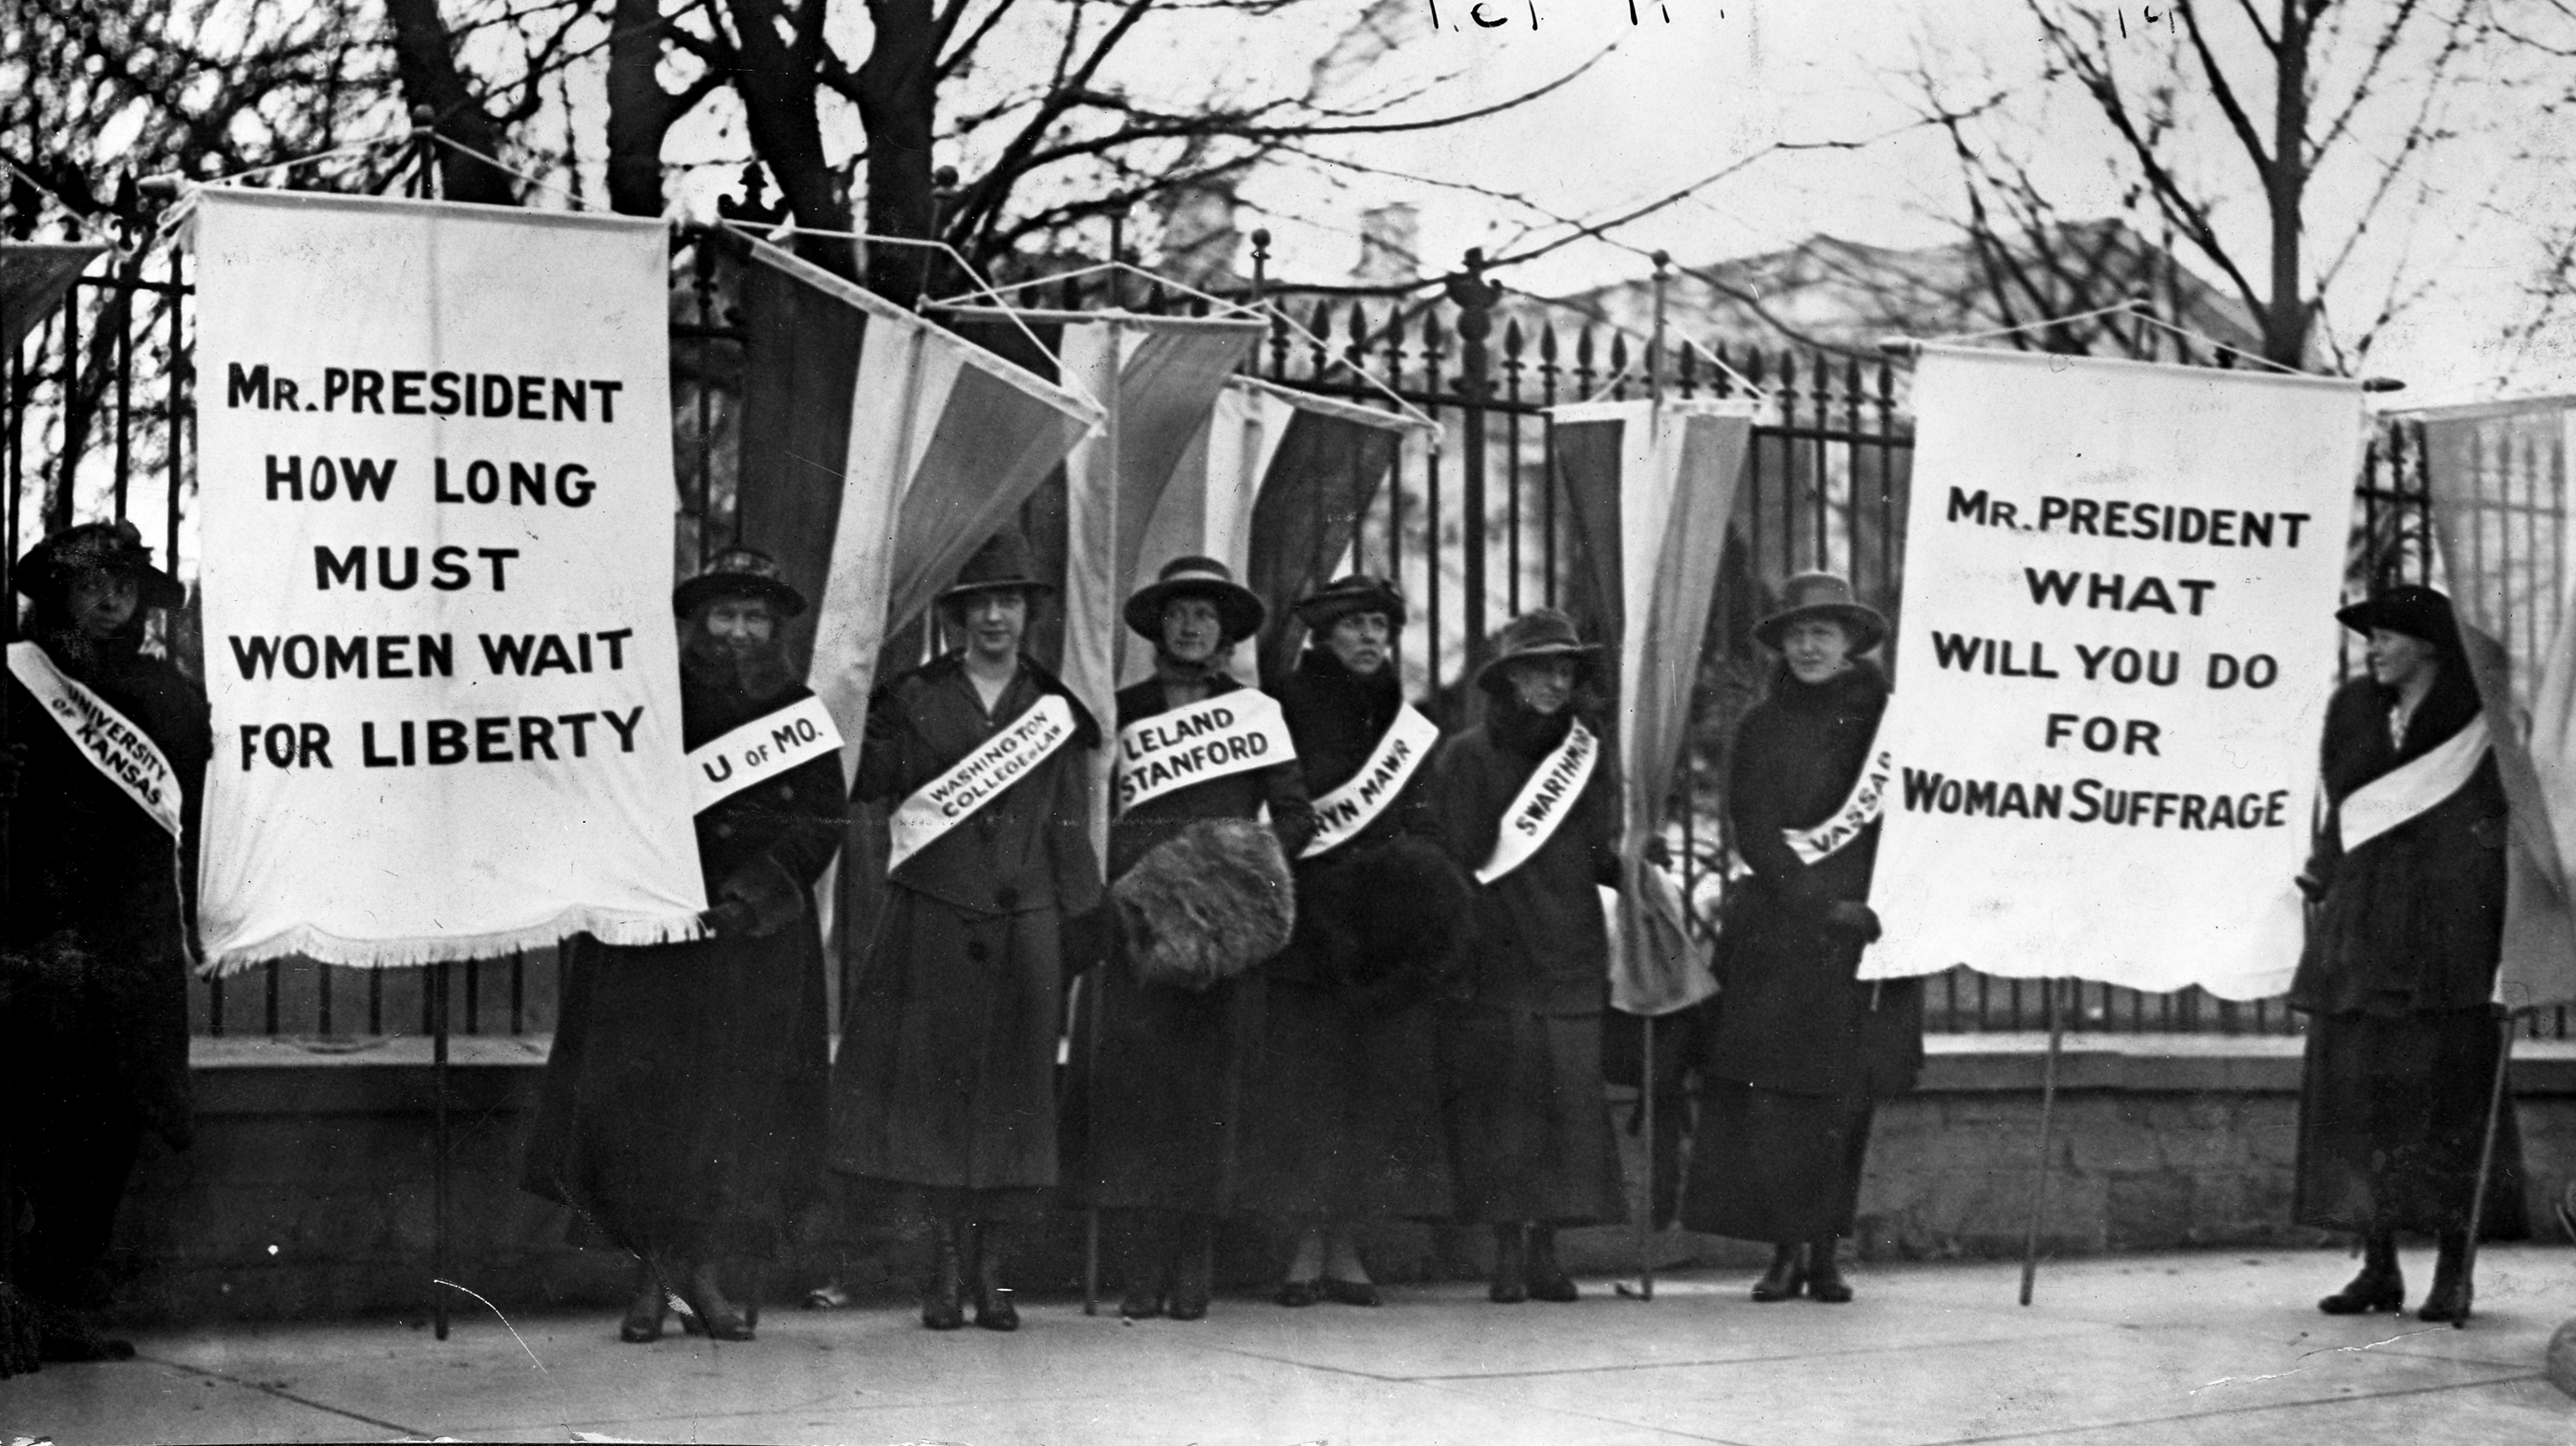 Suffragists picketing at the White House, February 1917. Image: Library of Congress.